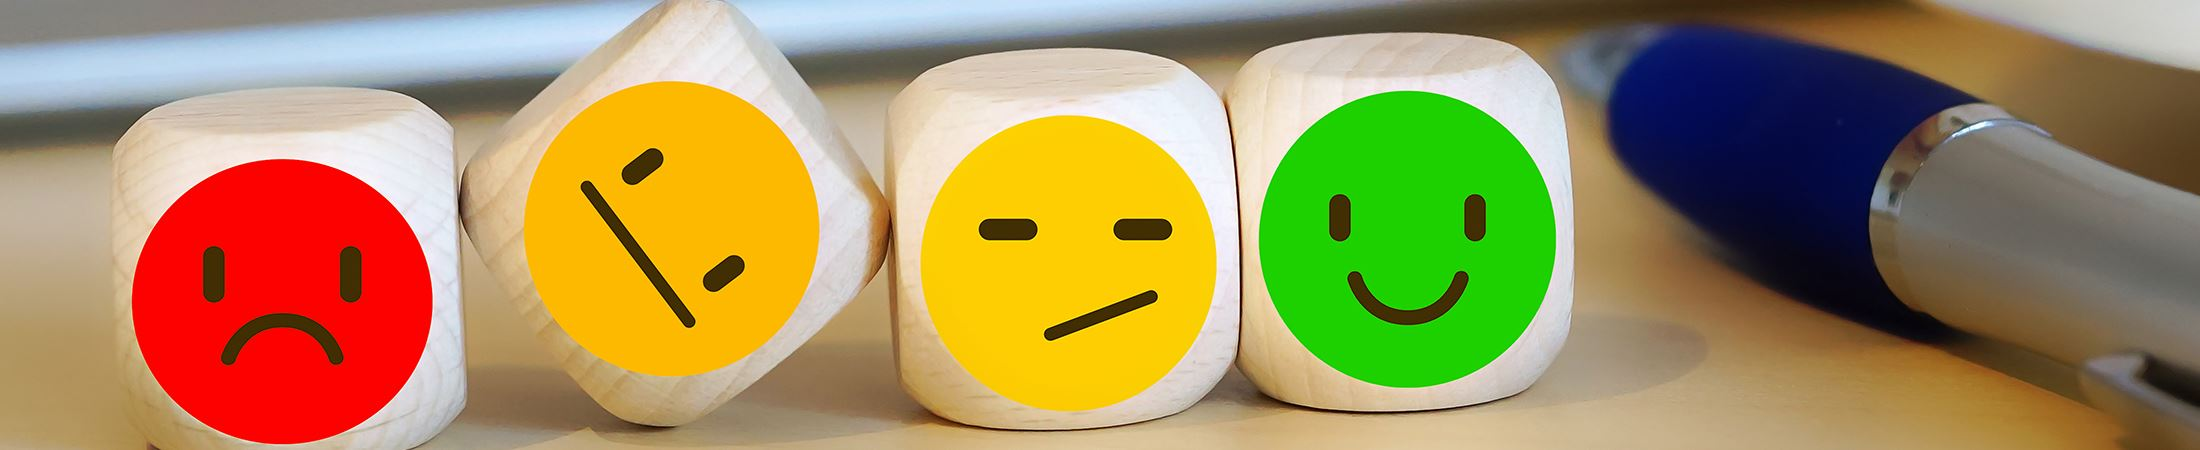 wooden blocks with emoji faces